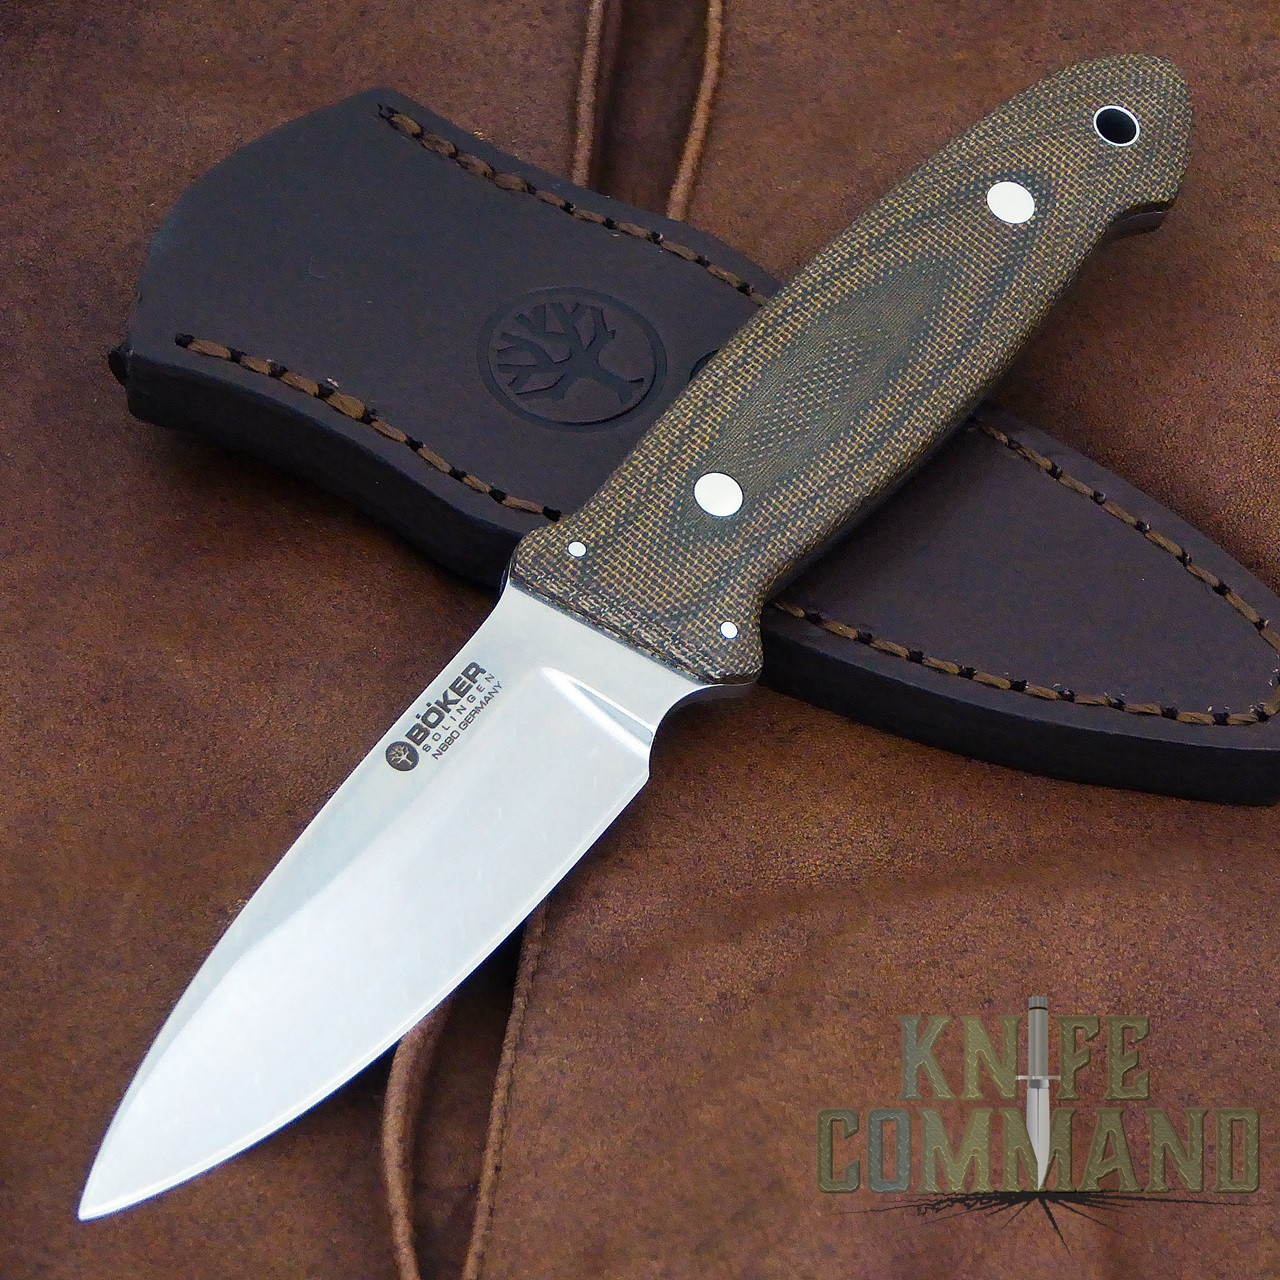 Boker Cub Lucas Burnley EDC Fixed Blade Knife 120661.   A beautiful custom collaboration.